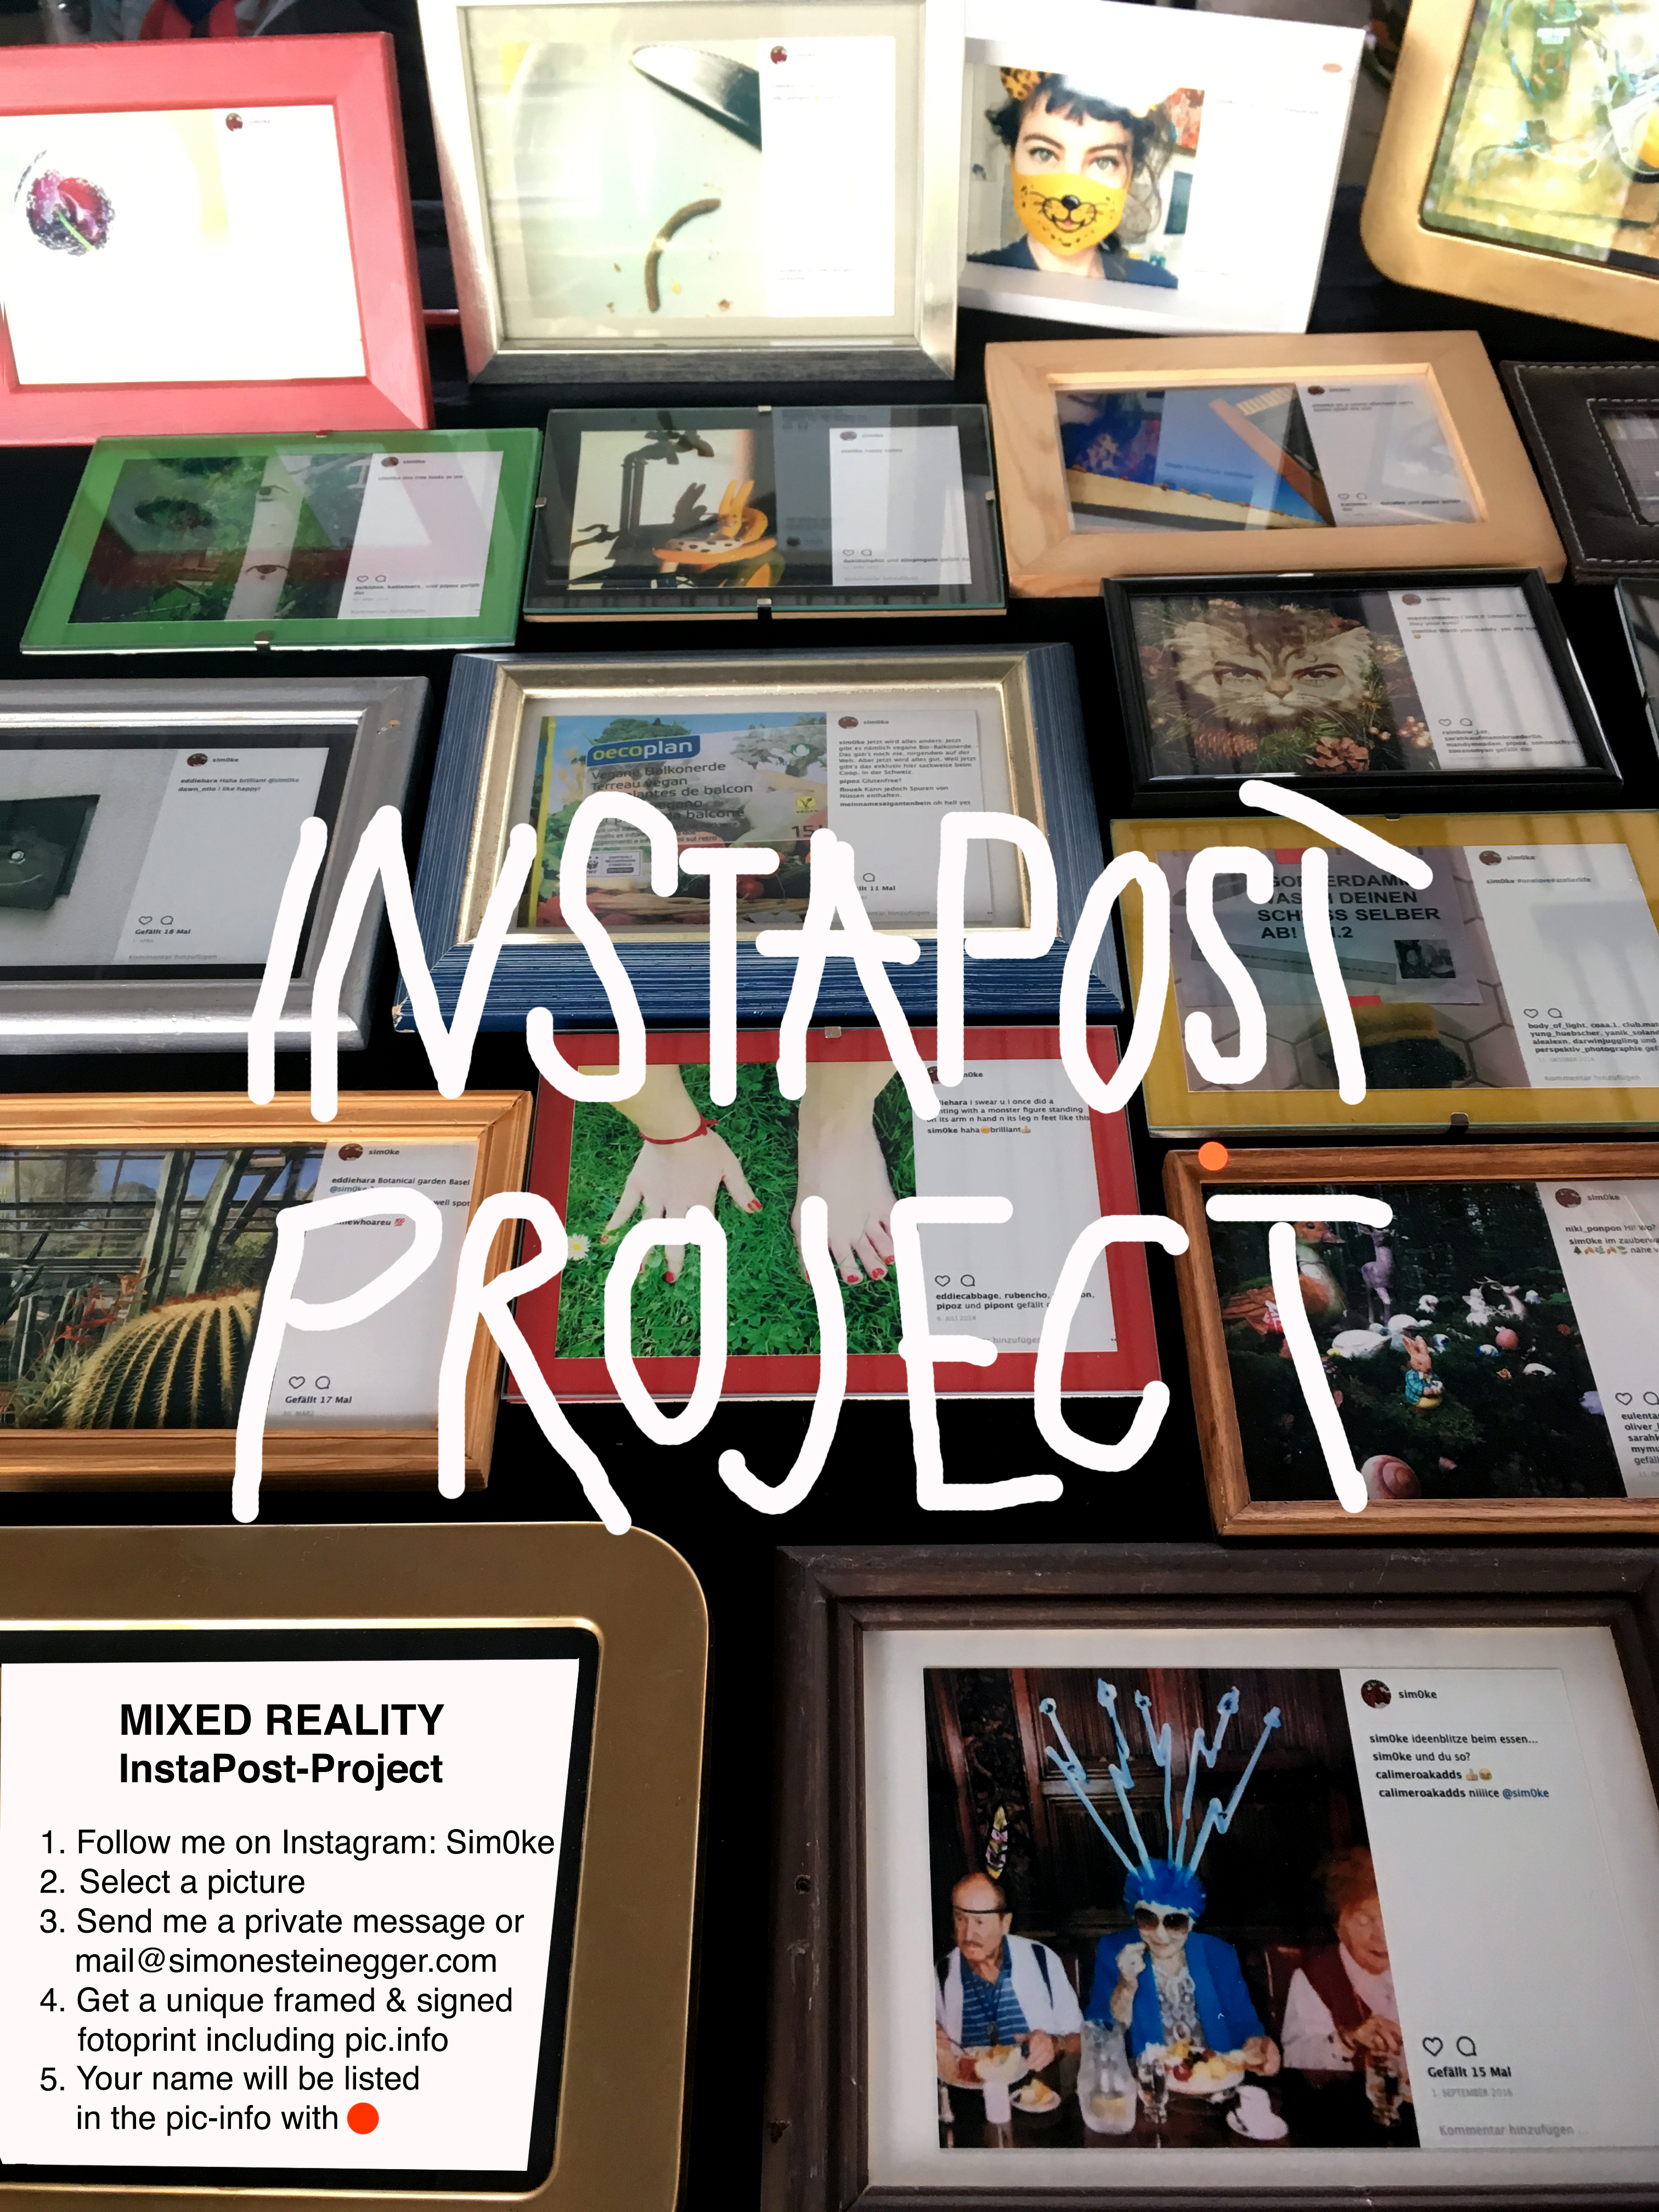 InstaPost-Project